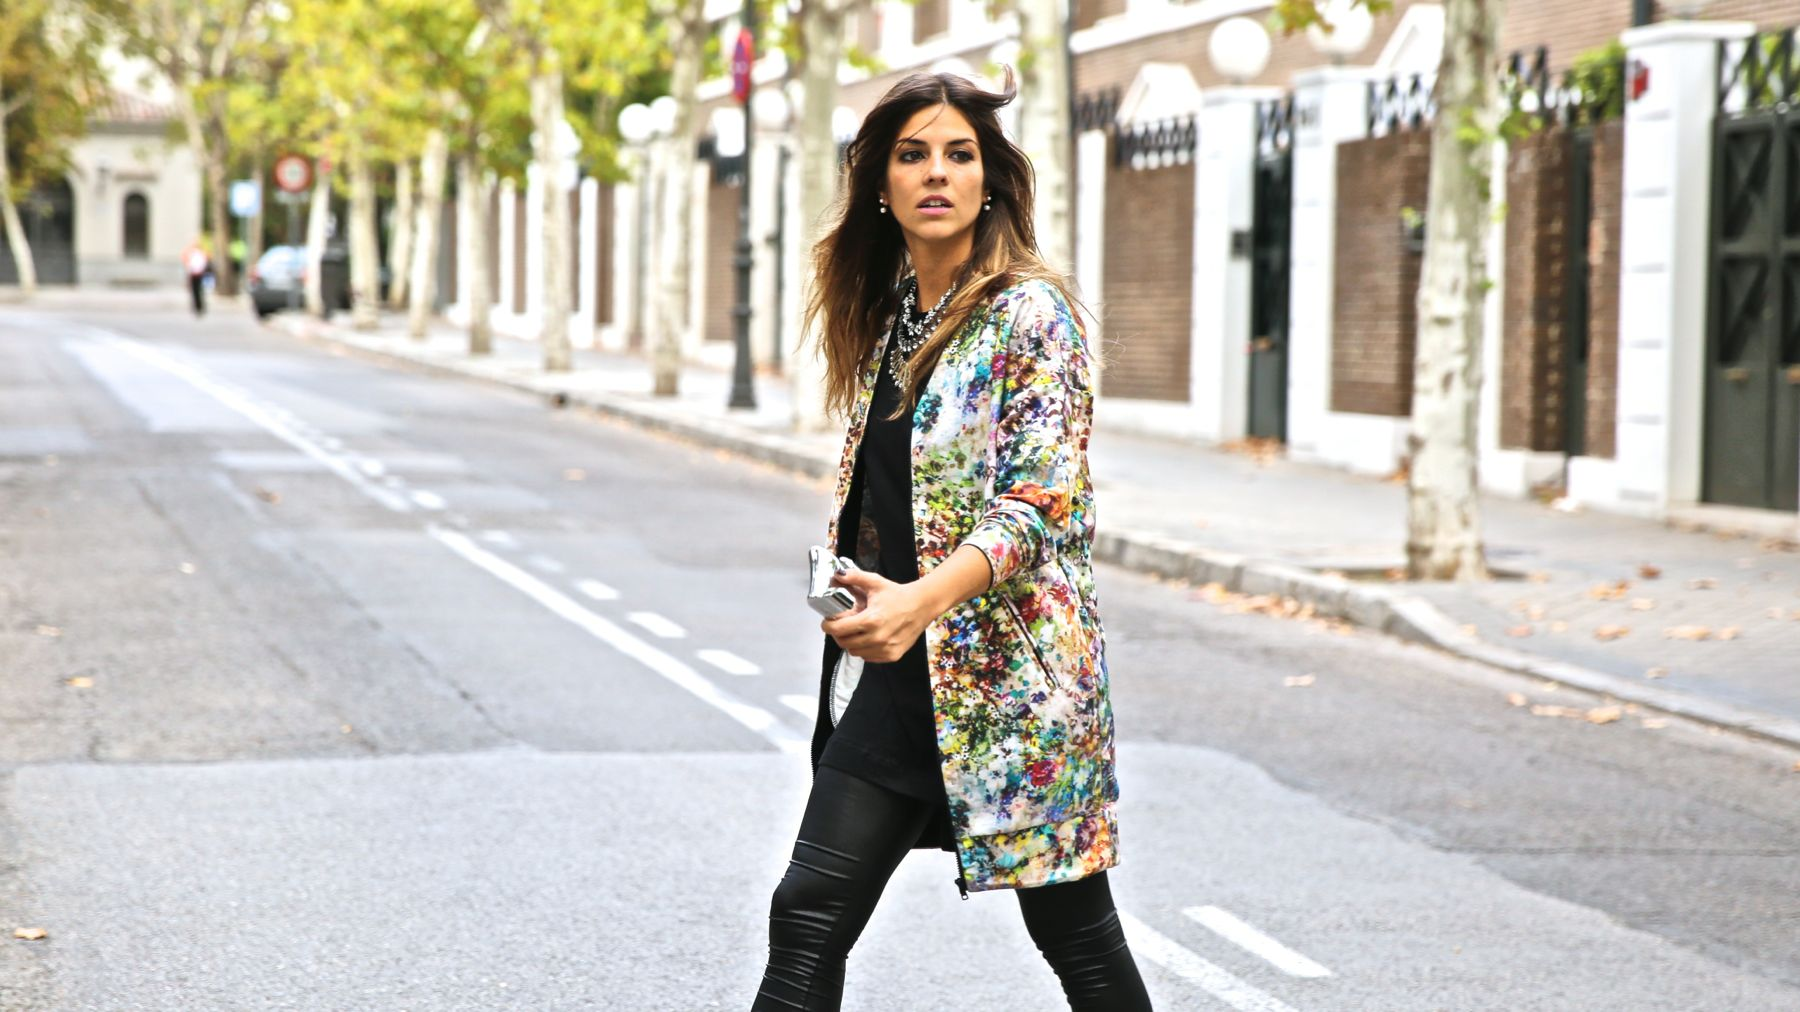 trendy_taste-look-outfit-street_style-ootd-blog-blogger-fashion_spain-moda_españa-leggings-bomber-cazadora-estampado_flores-flower_print-mas34-stiletto-estiletos-basic_tee-camiseta_basica-sport_chic-3